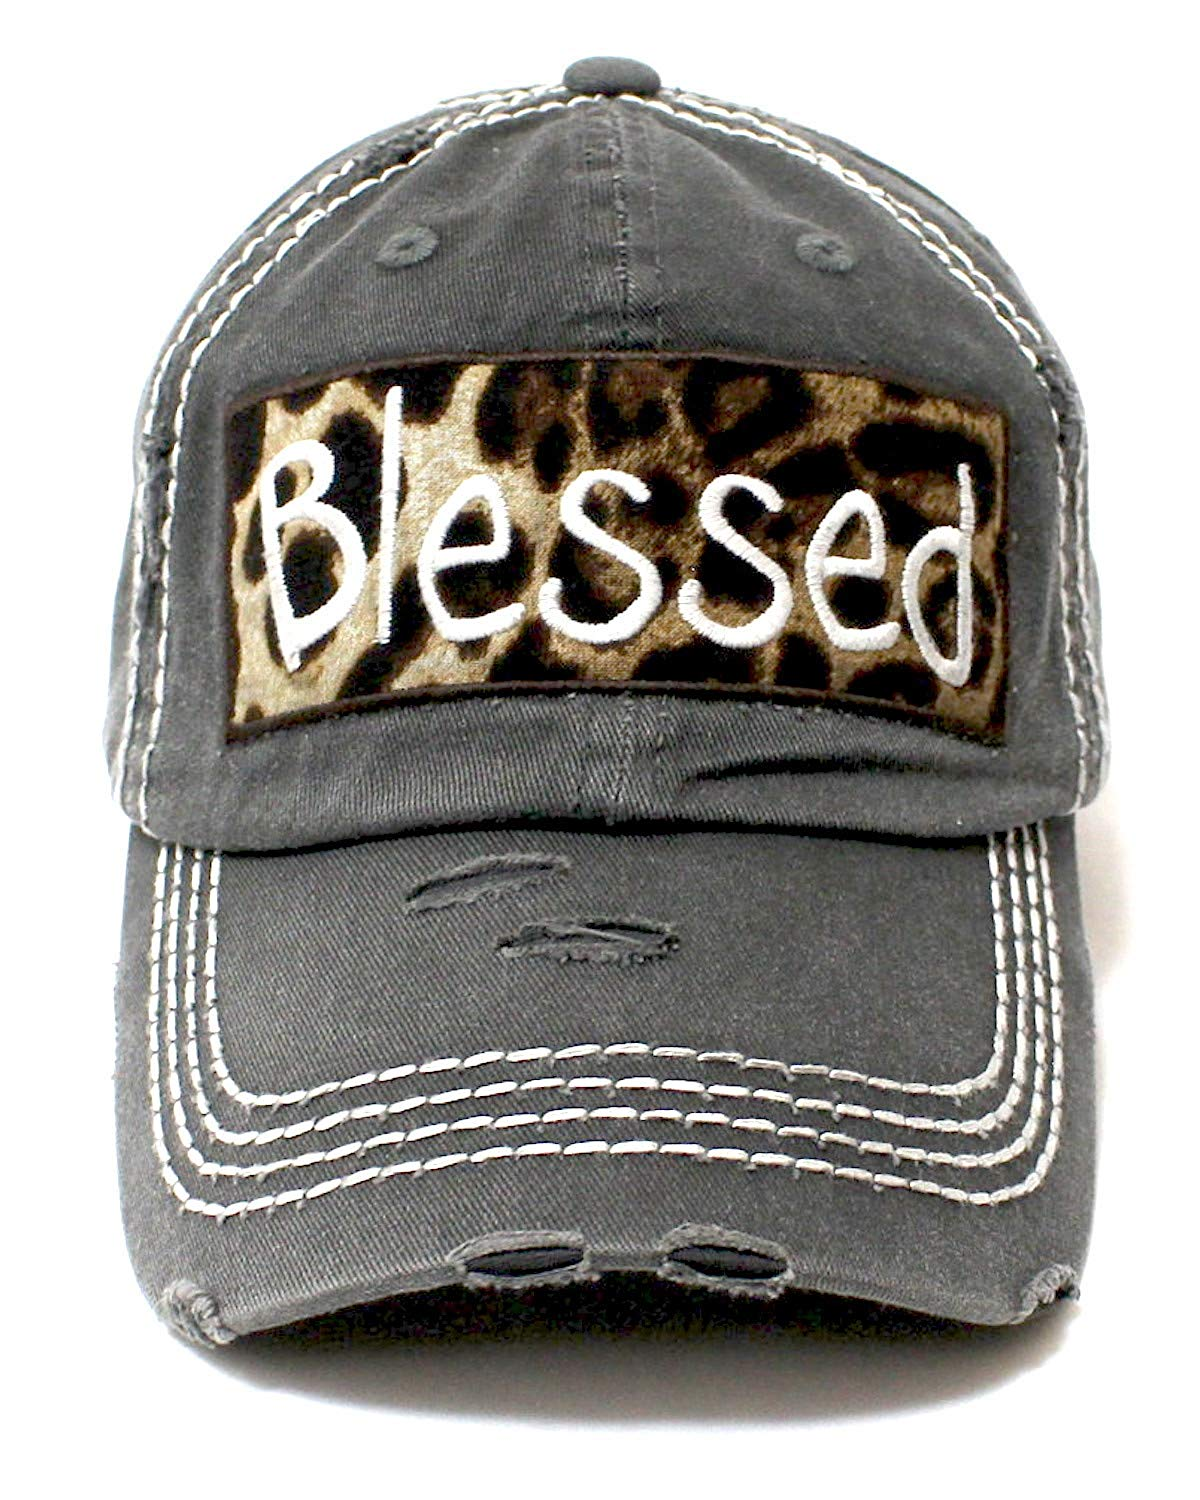 CAPS 'N VINTAGE Charcoal Blessed Leopard Patch Embroidery Hat - Caps 'N Vintage